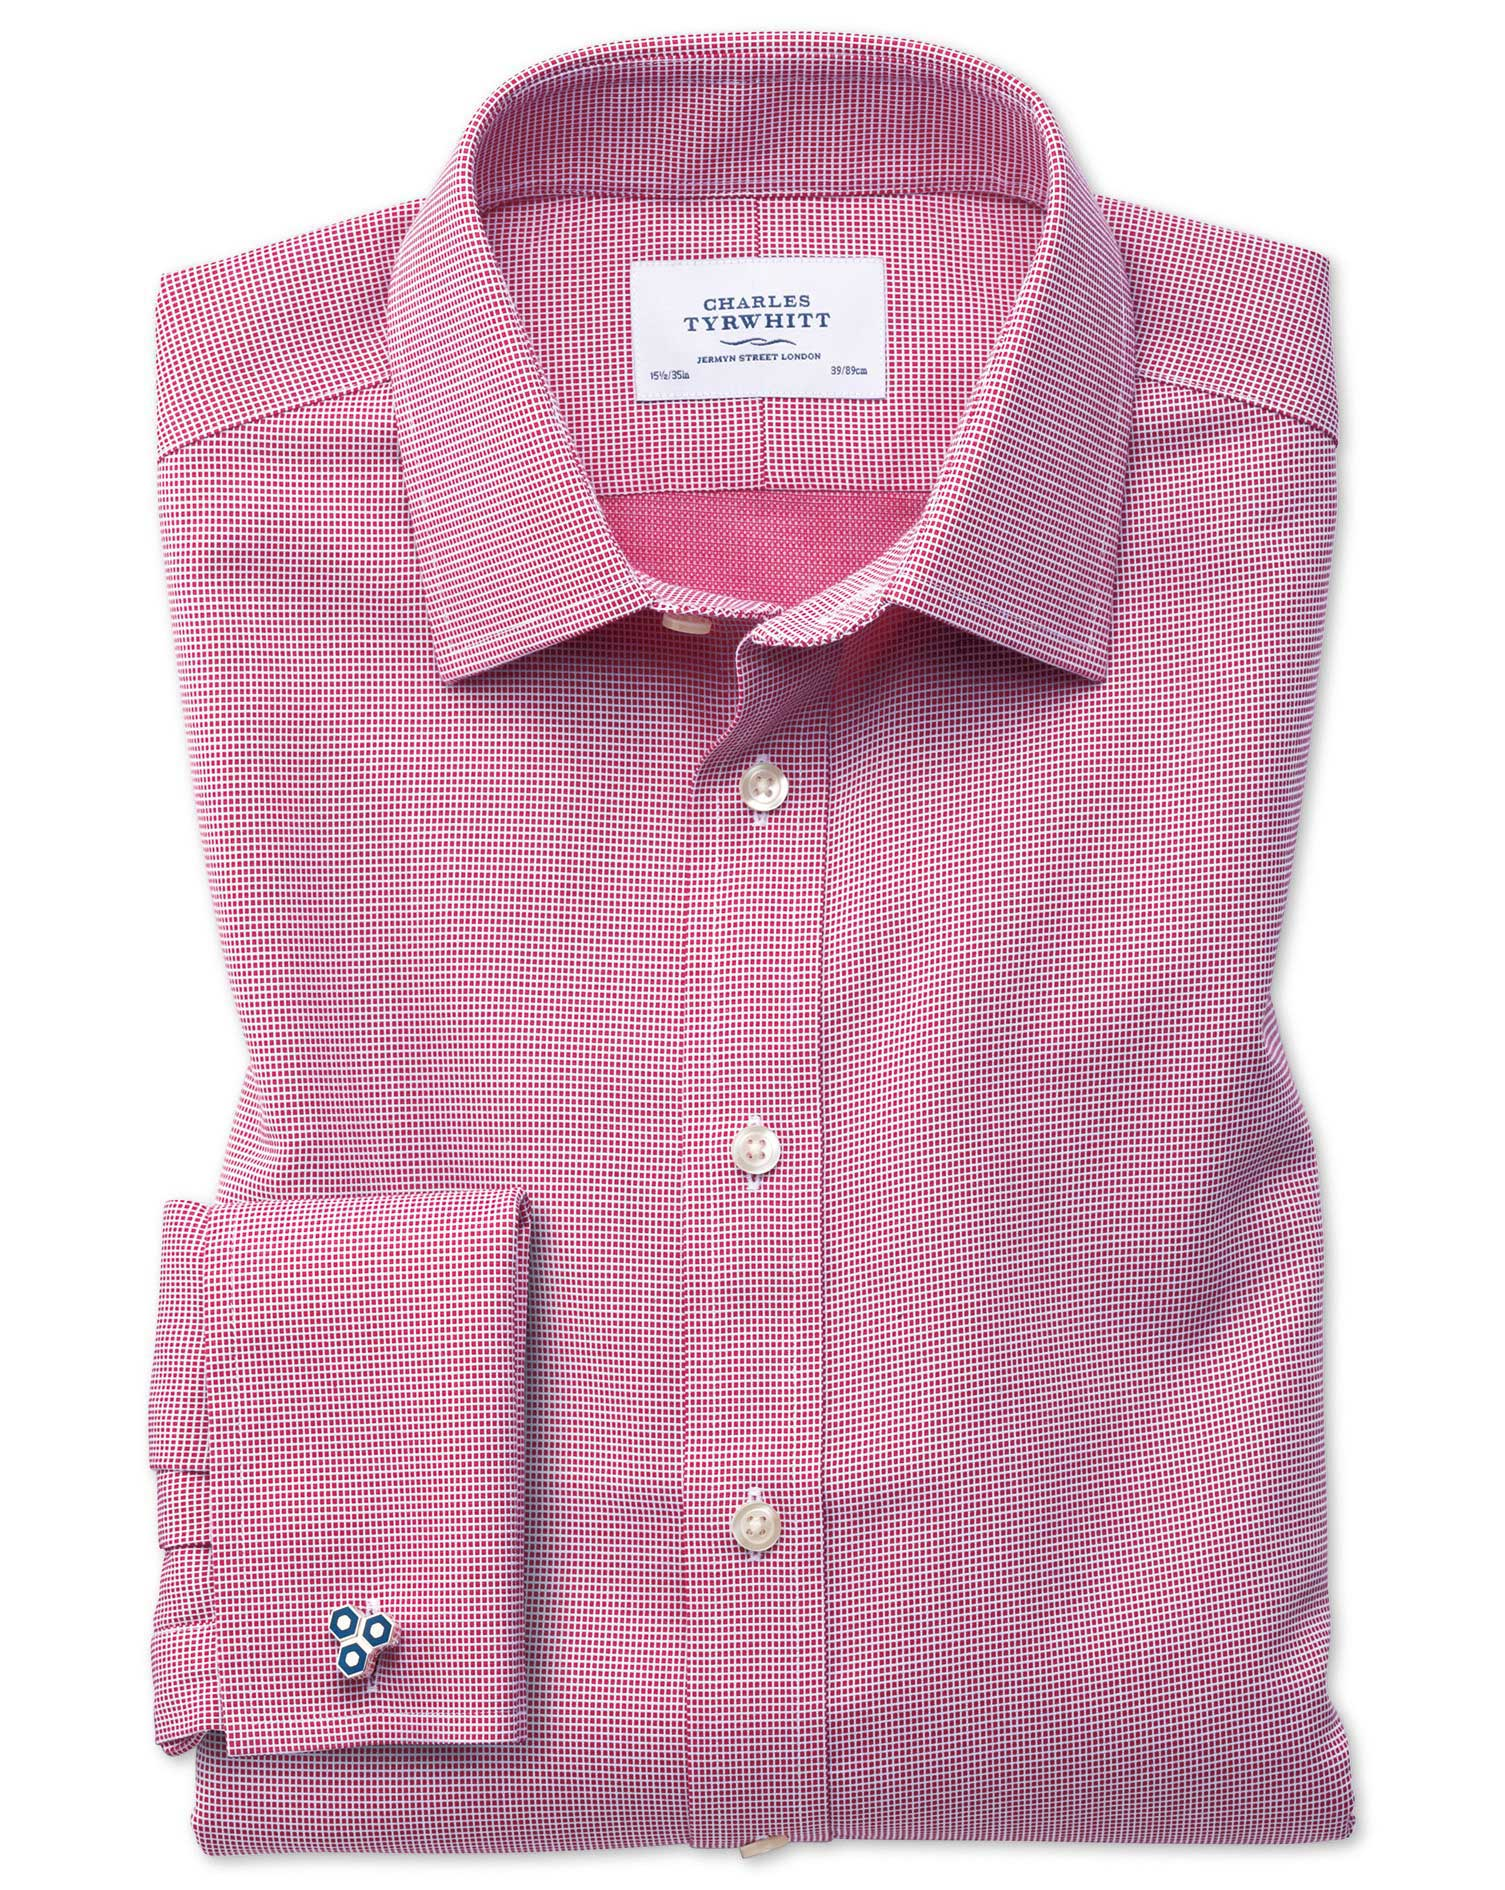 Slim Fit Non-Iron Square Weave Magenta Cotton Formal Shirt Double Cuff Size 16.5/35 by Charles Tyrwh